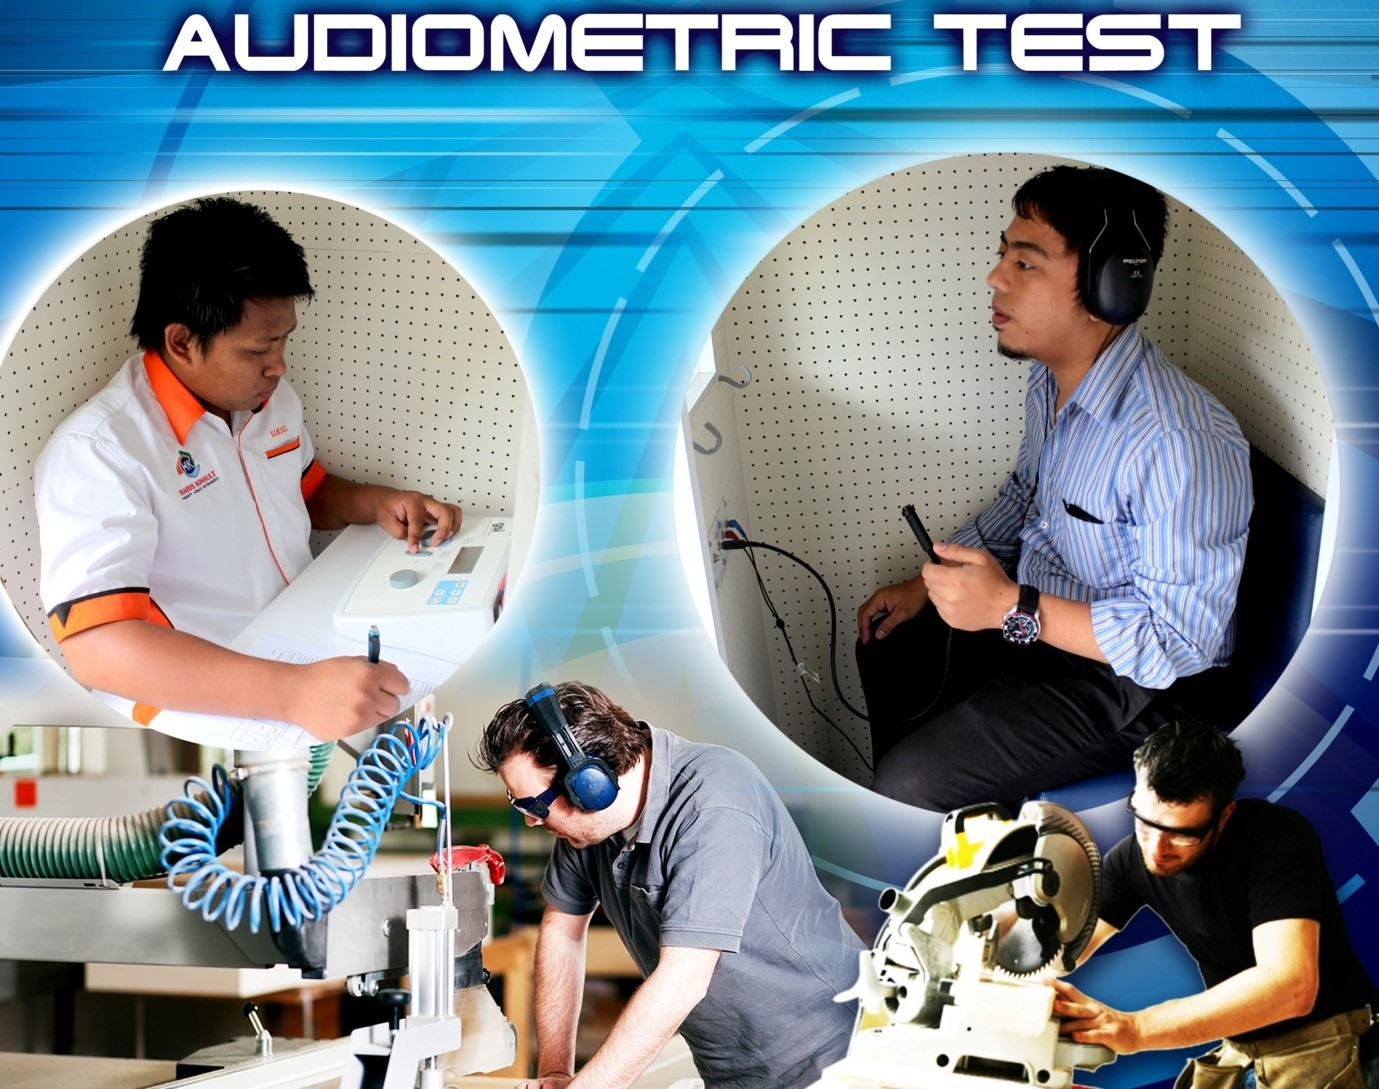 Audiometric